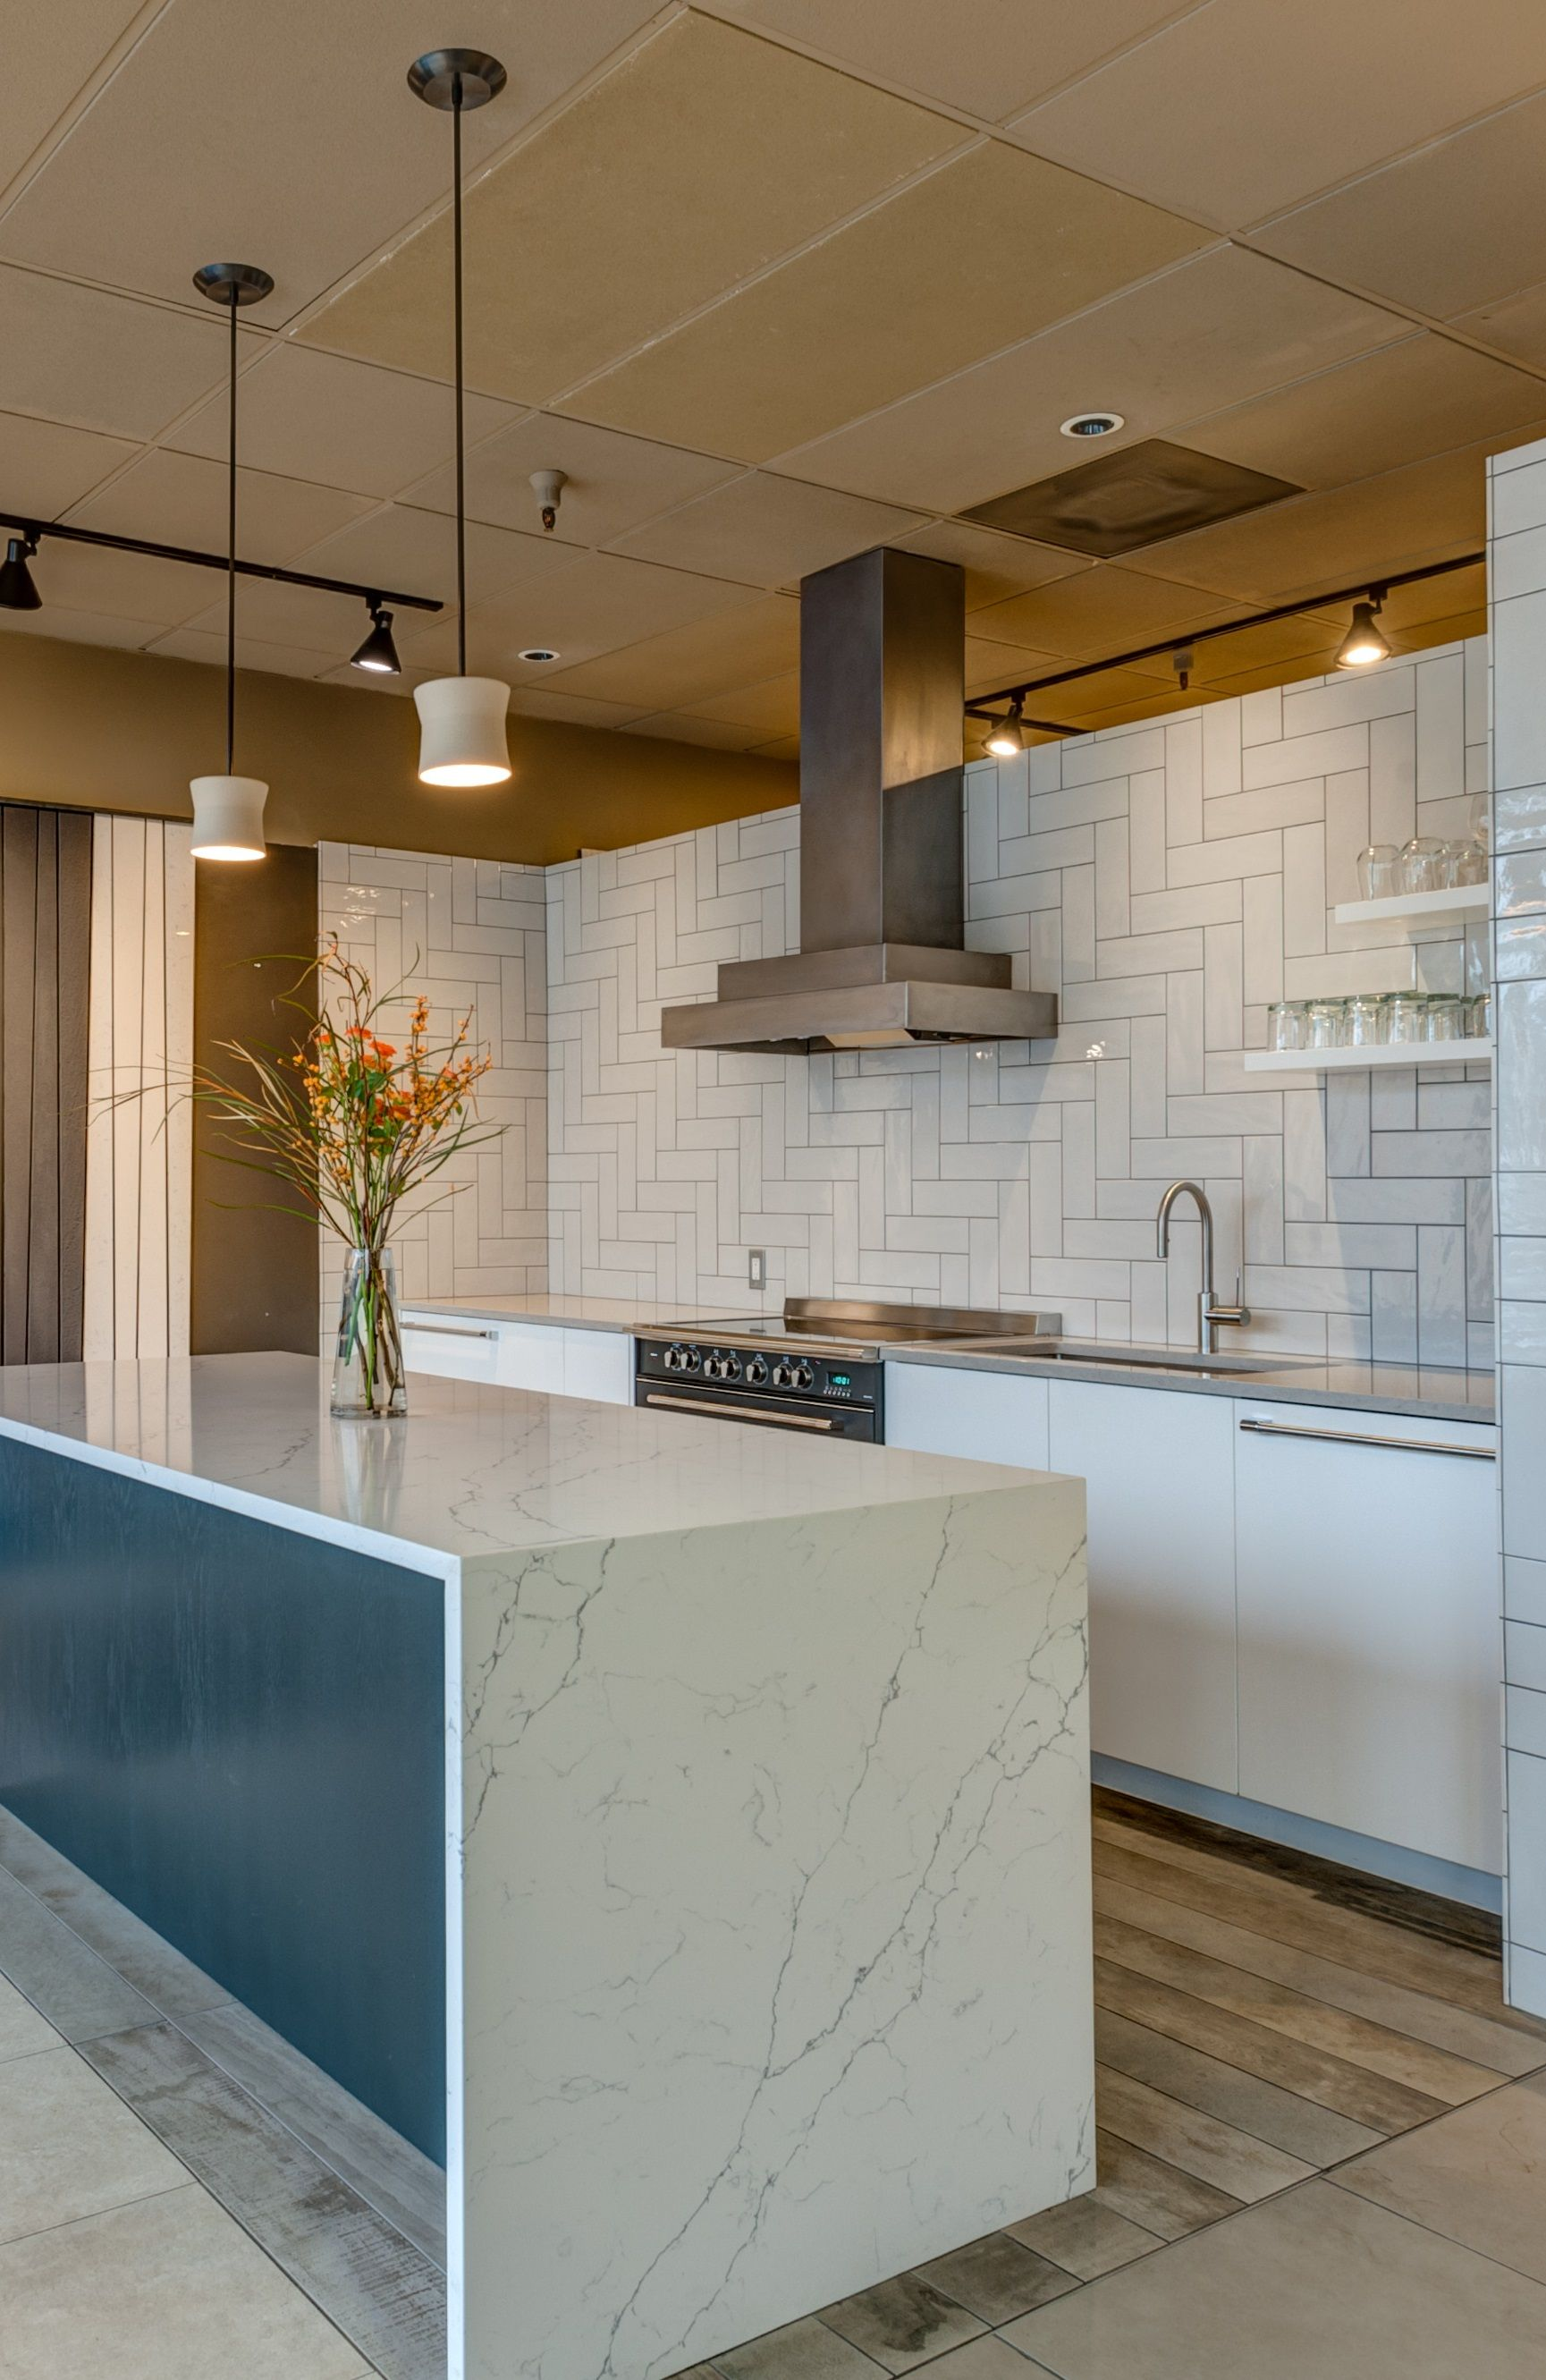 Our Portland Showroom Has A New Kitchen To Show Off A Large